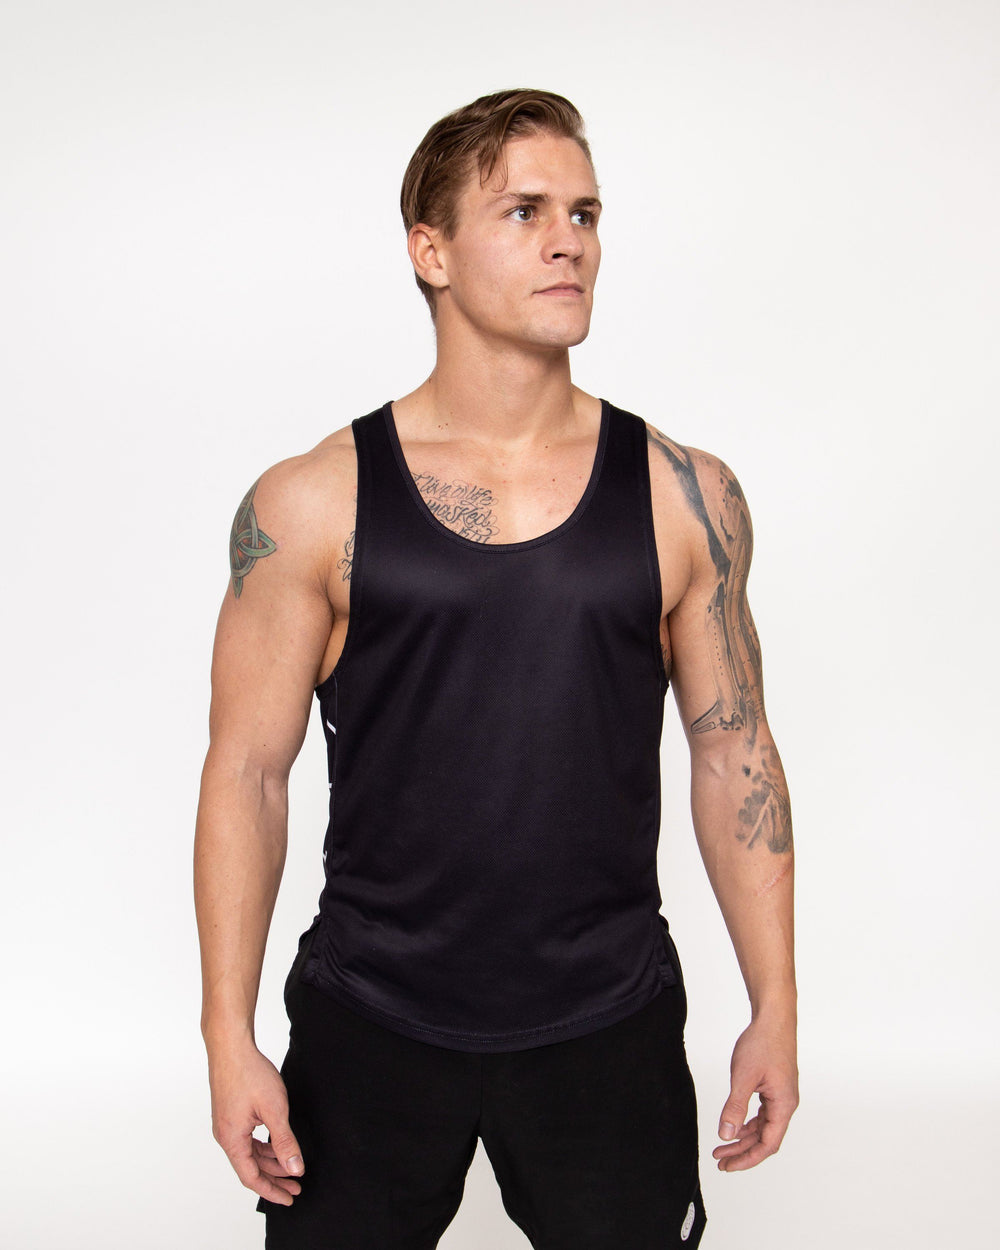 Draft Tank - Black MEN'S TANKS STAIX M